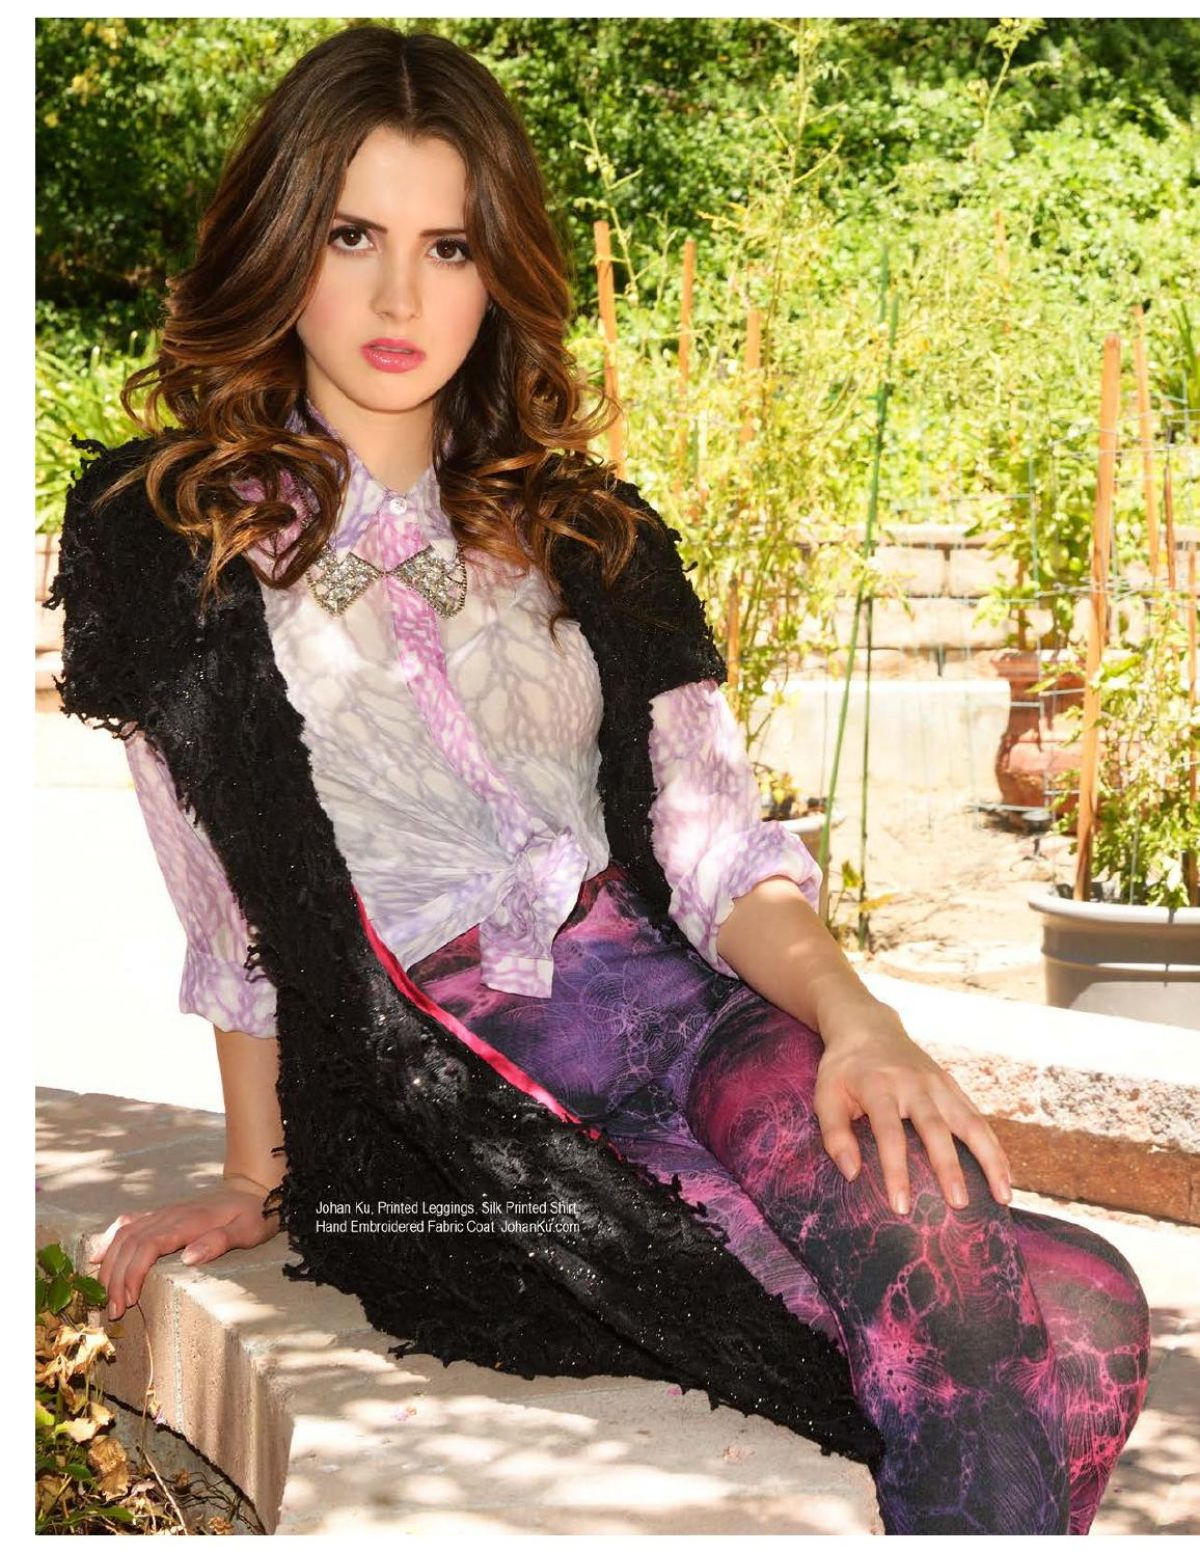 laura-marano-in-regard-magazine-august-2013-issue_5.jpg